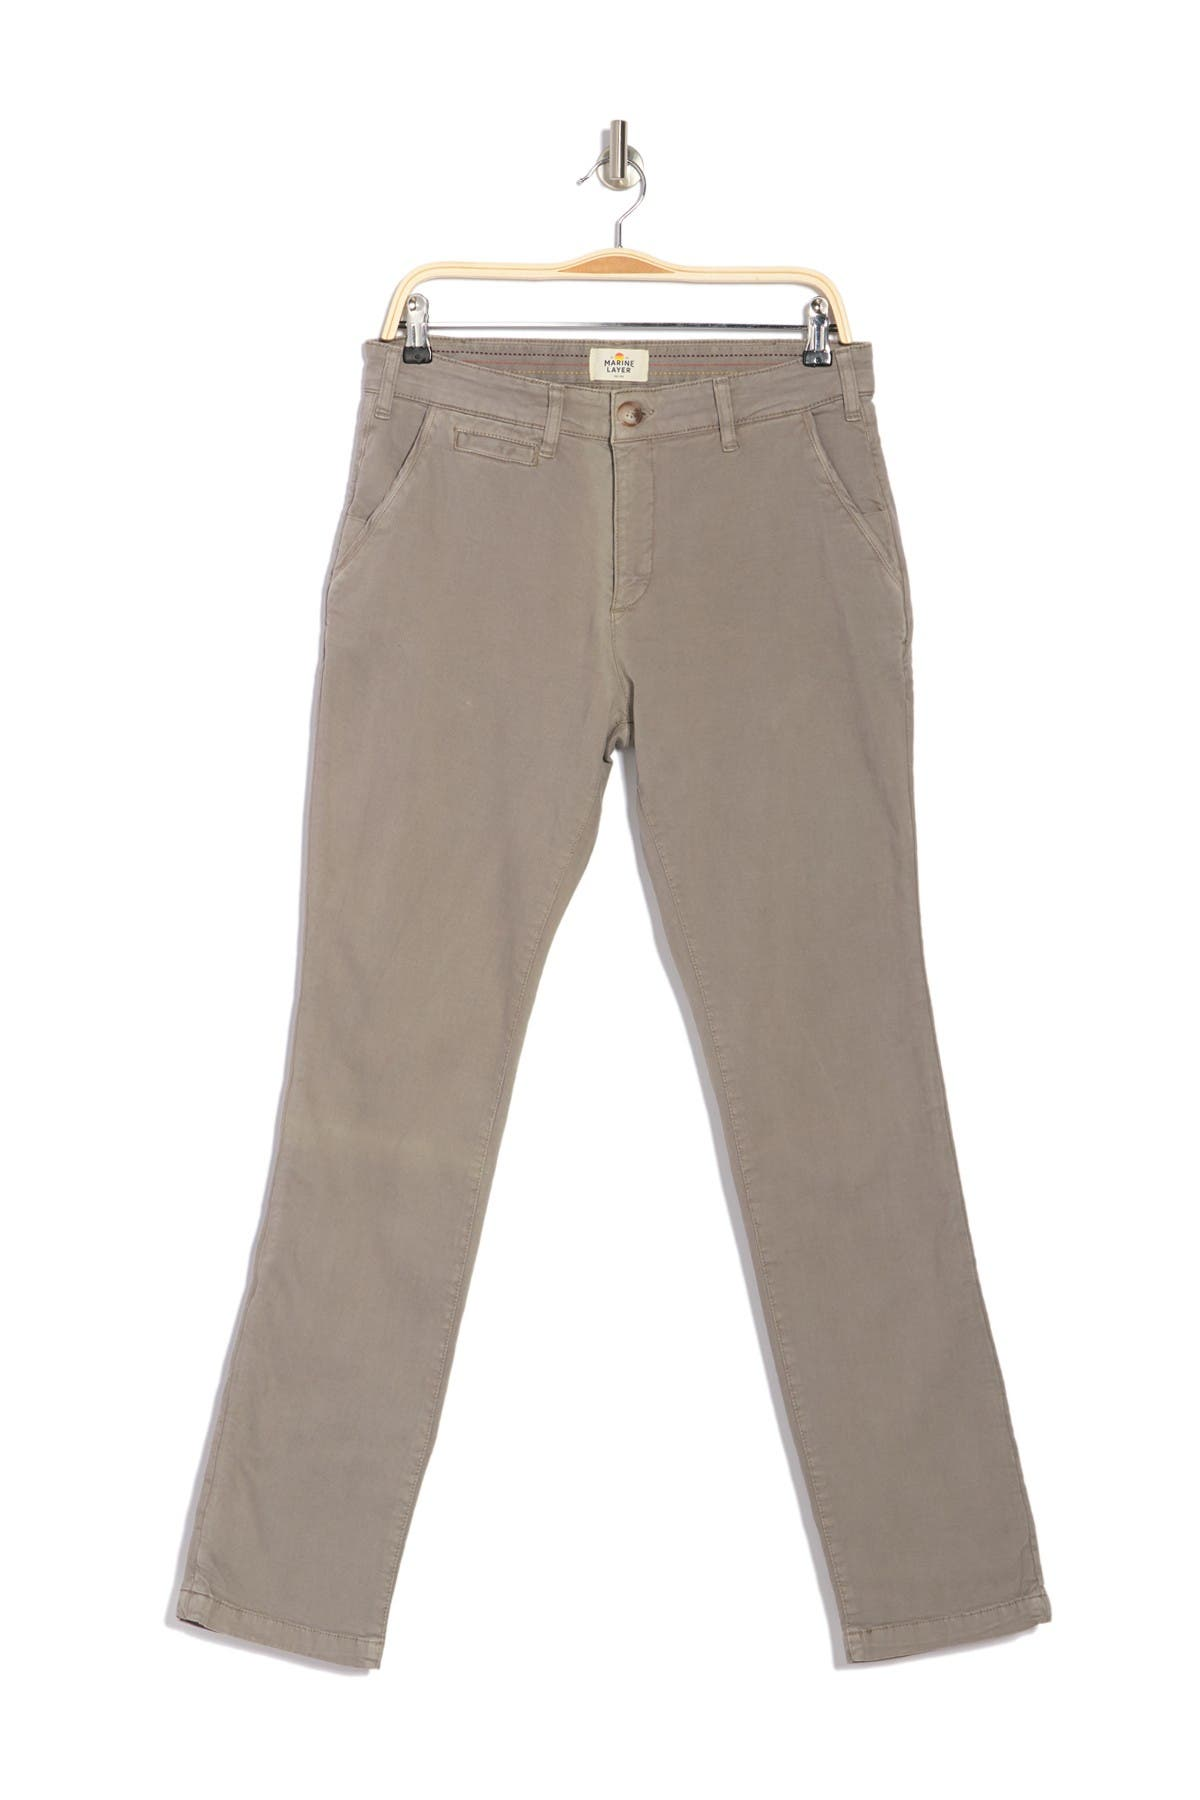 Image of Marine Layer Solid Walk Pants